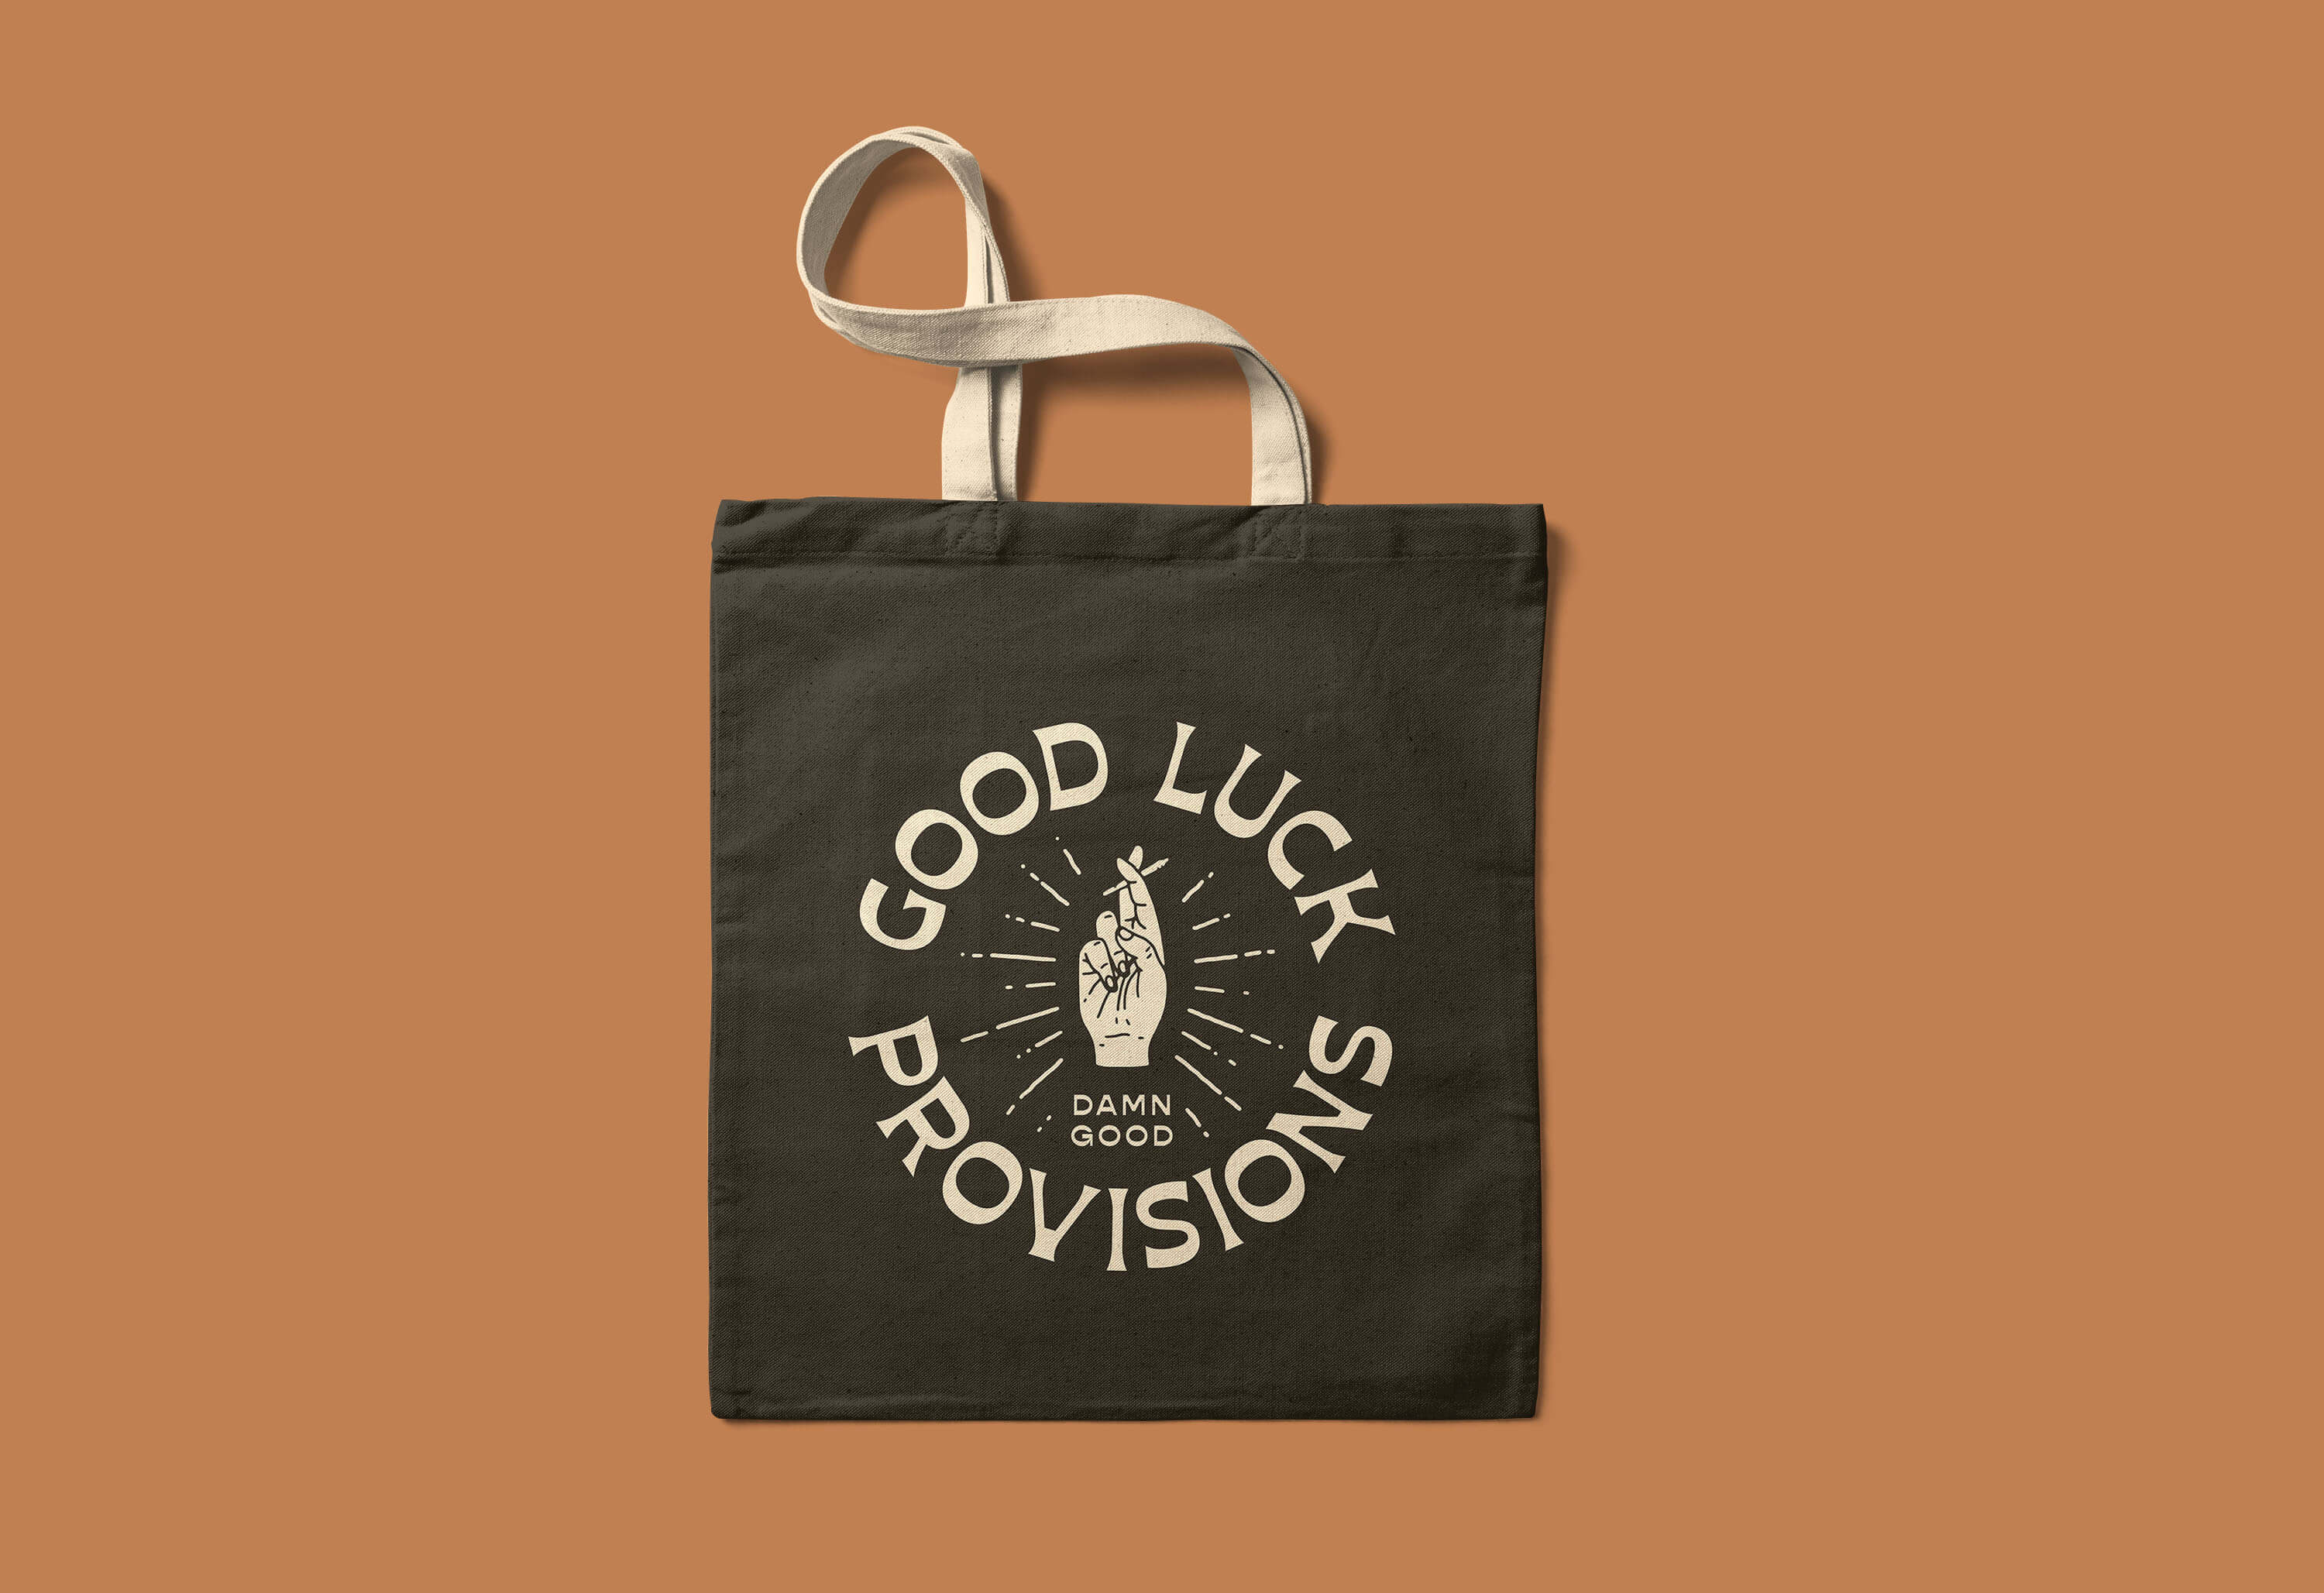 Tote Bag for Good Luck Provisions